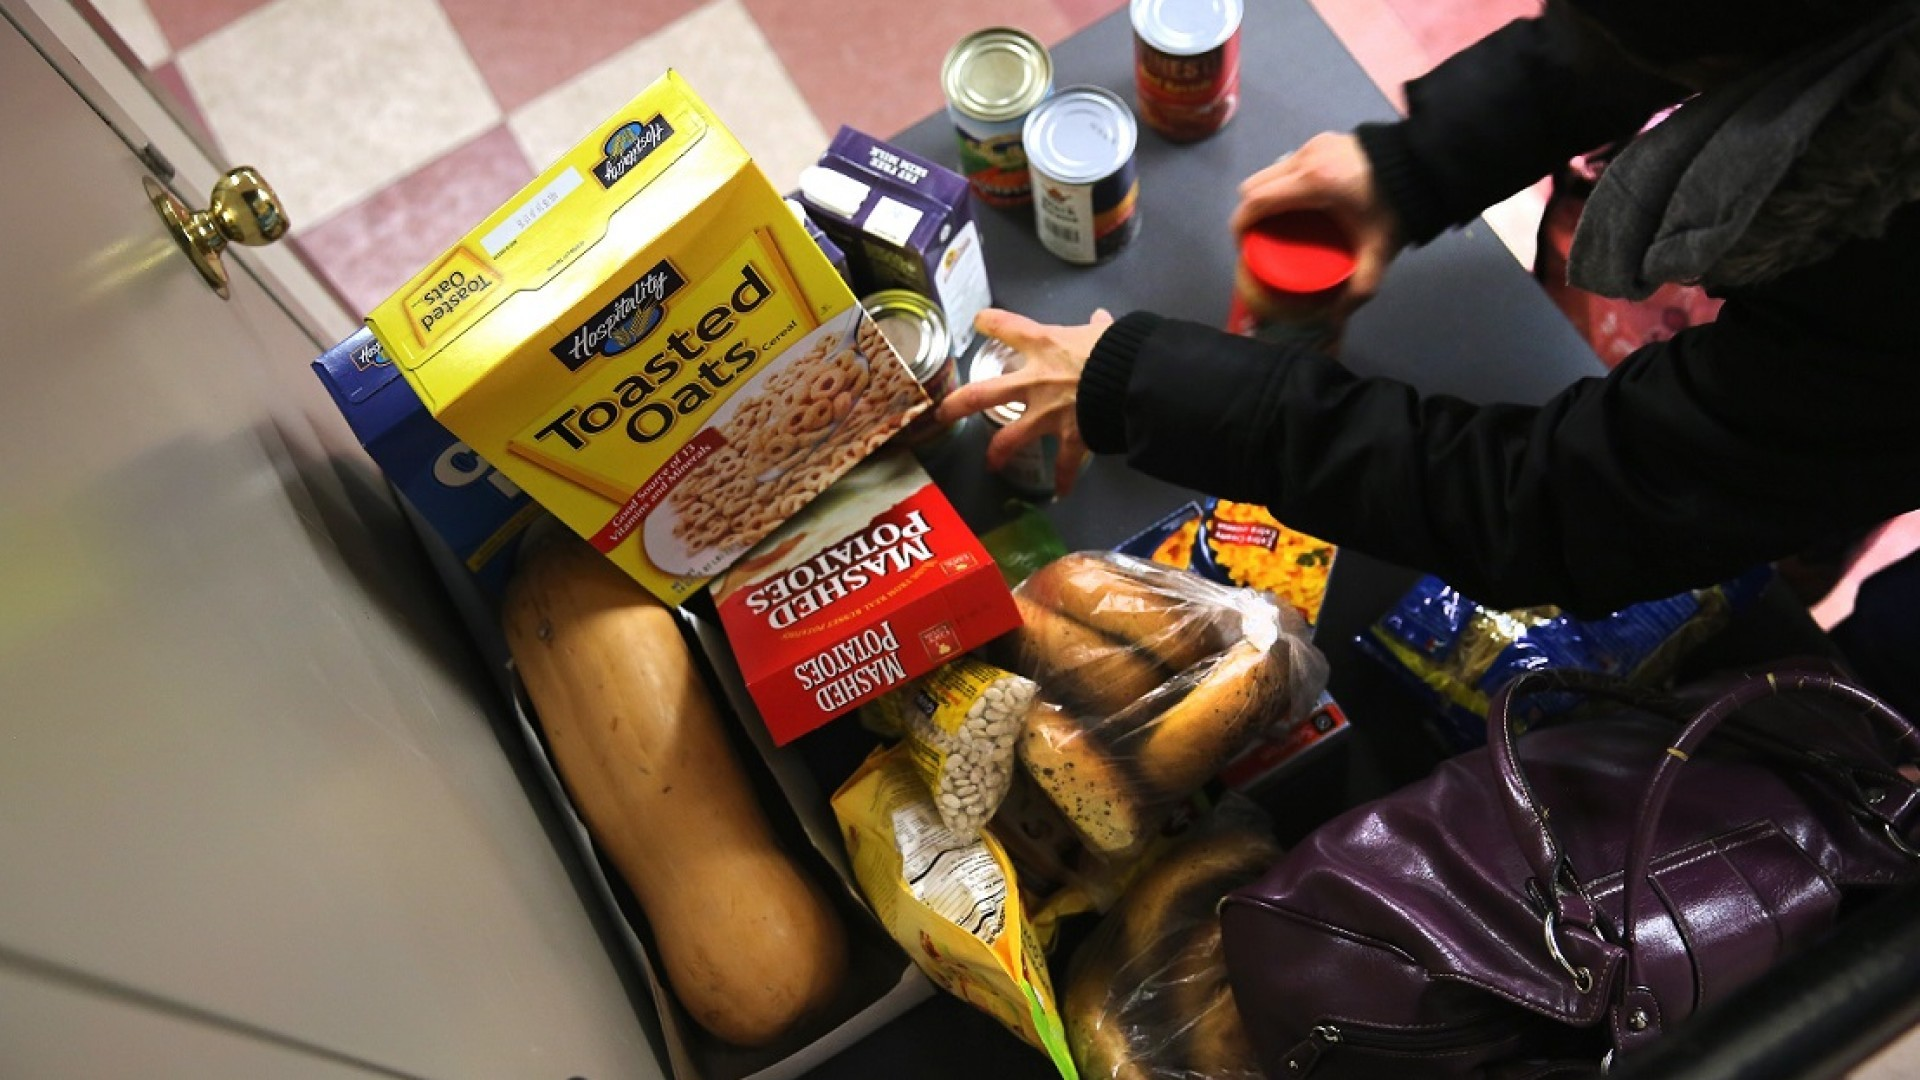 More than 750,000 could lose food stamps under Trump proposal